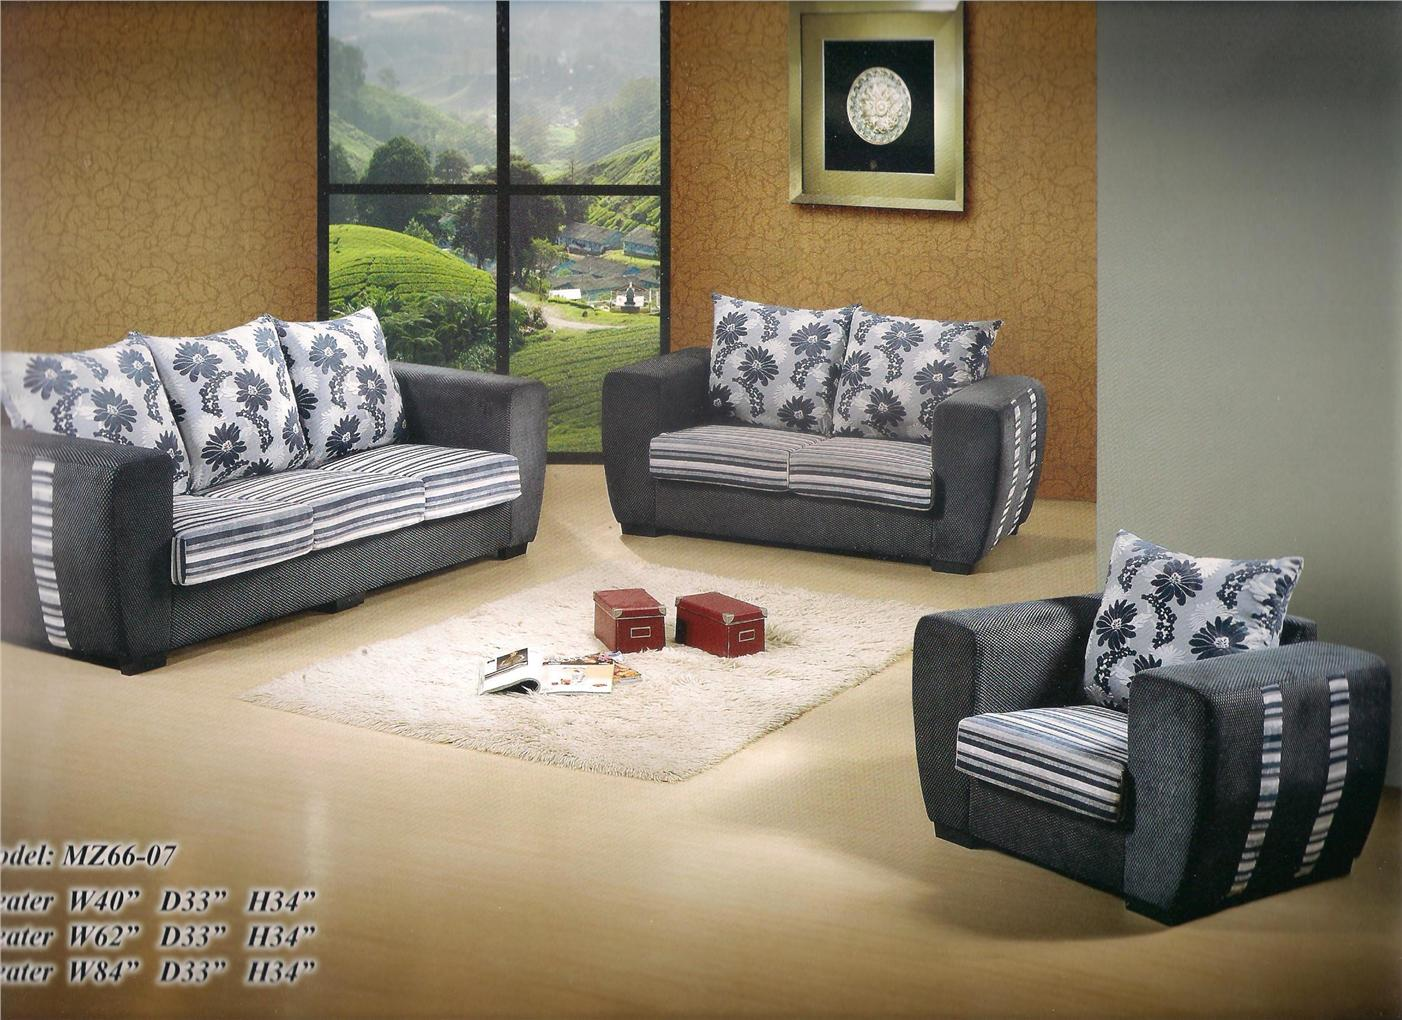 nicehome special offer price sofa1+2+3 model-MZ6607